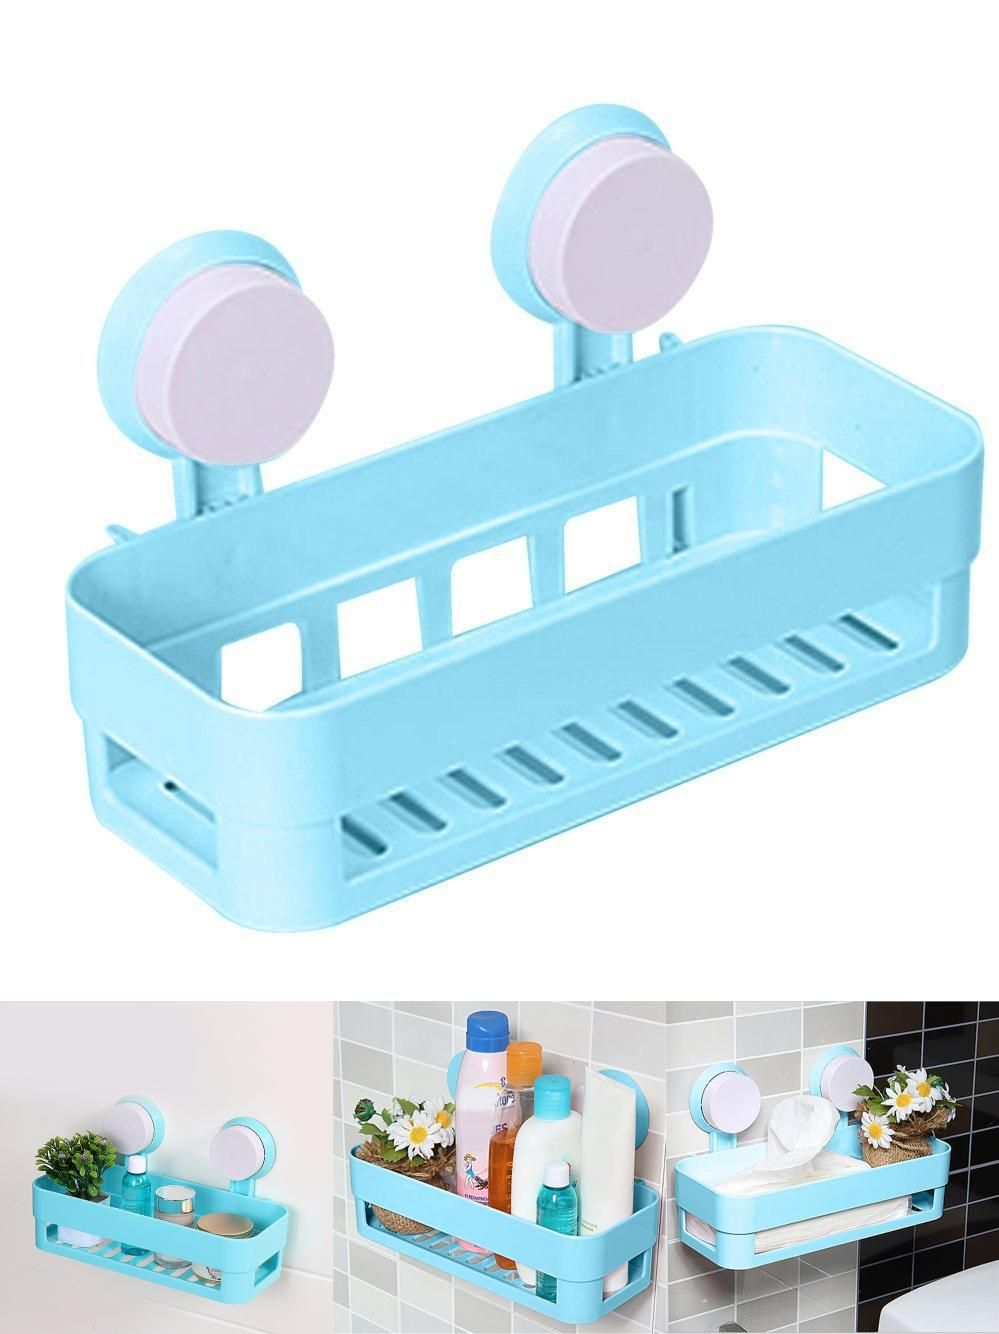 Visit to Buy] CNIM Hot 8pcs Kitchen Bathroom Shelf Plastic Shower ...